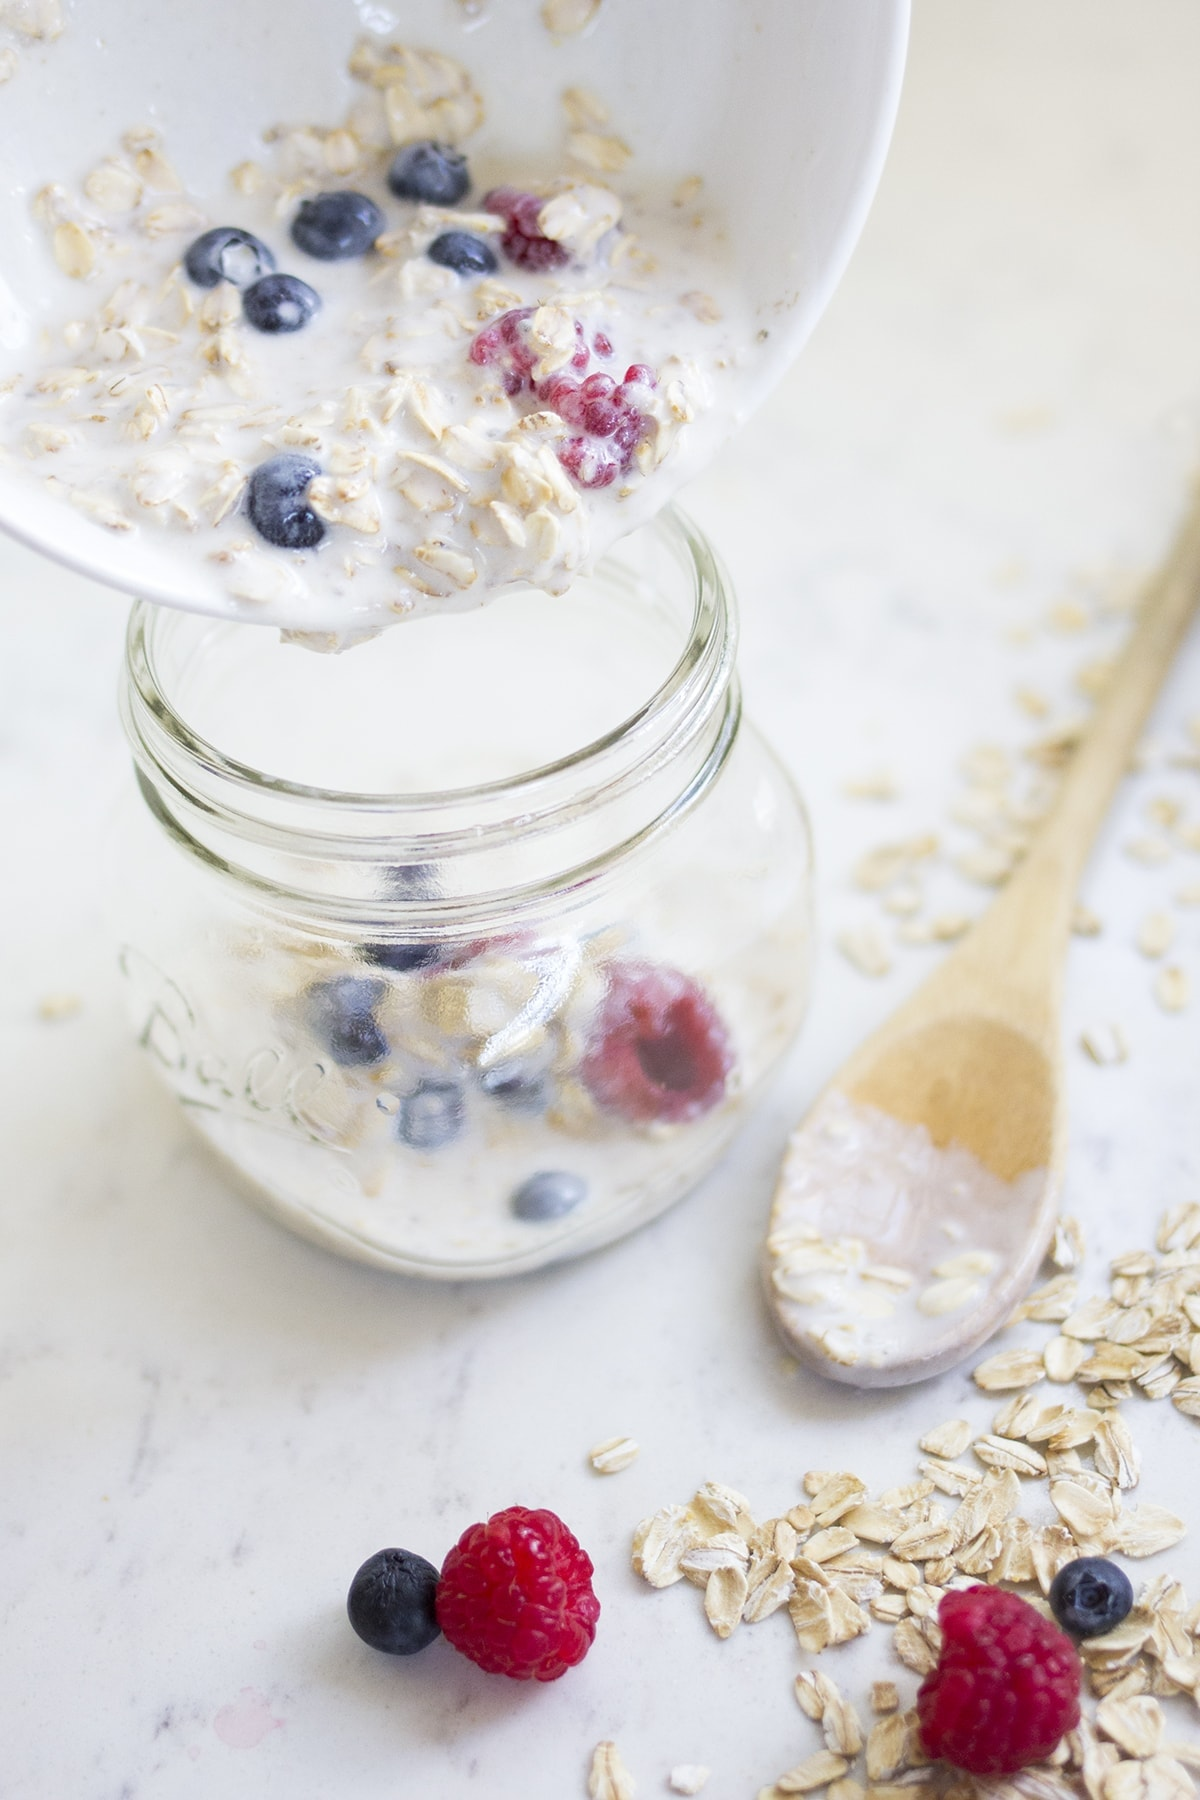 Chia Berry Overnight Oats